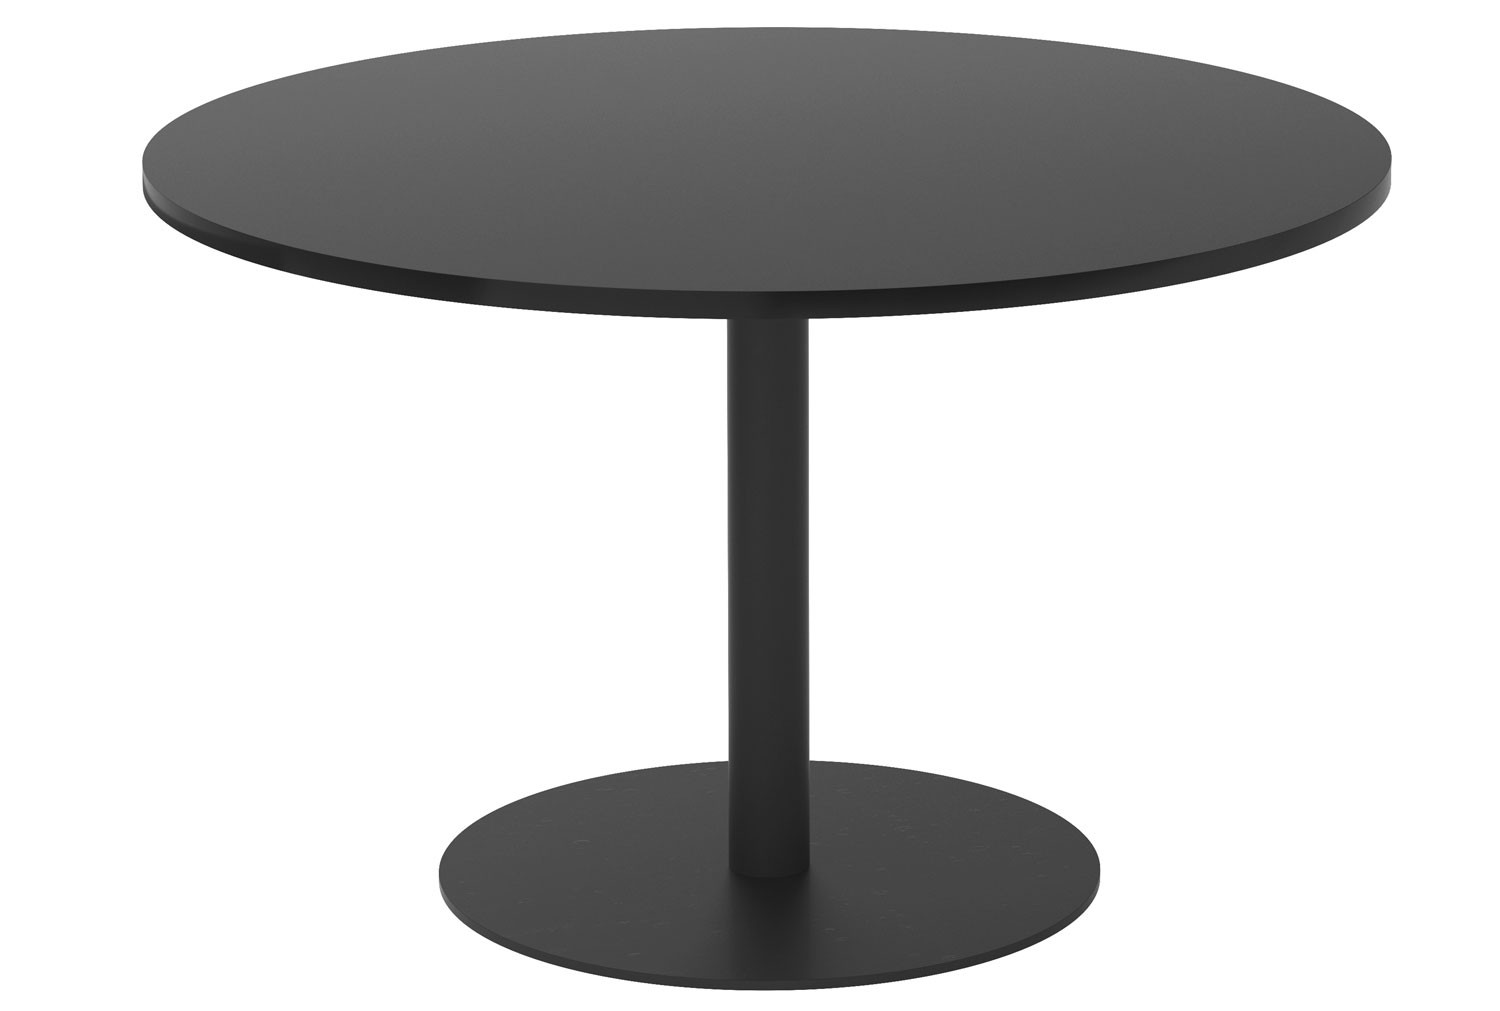 Raven Round Dining Table